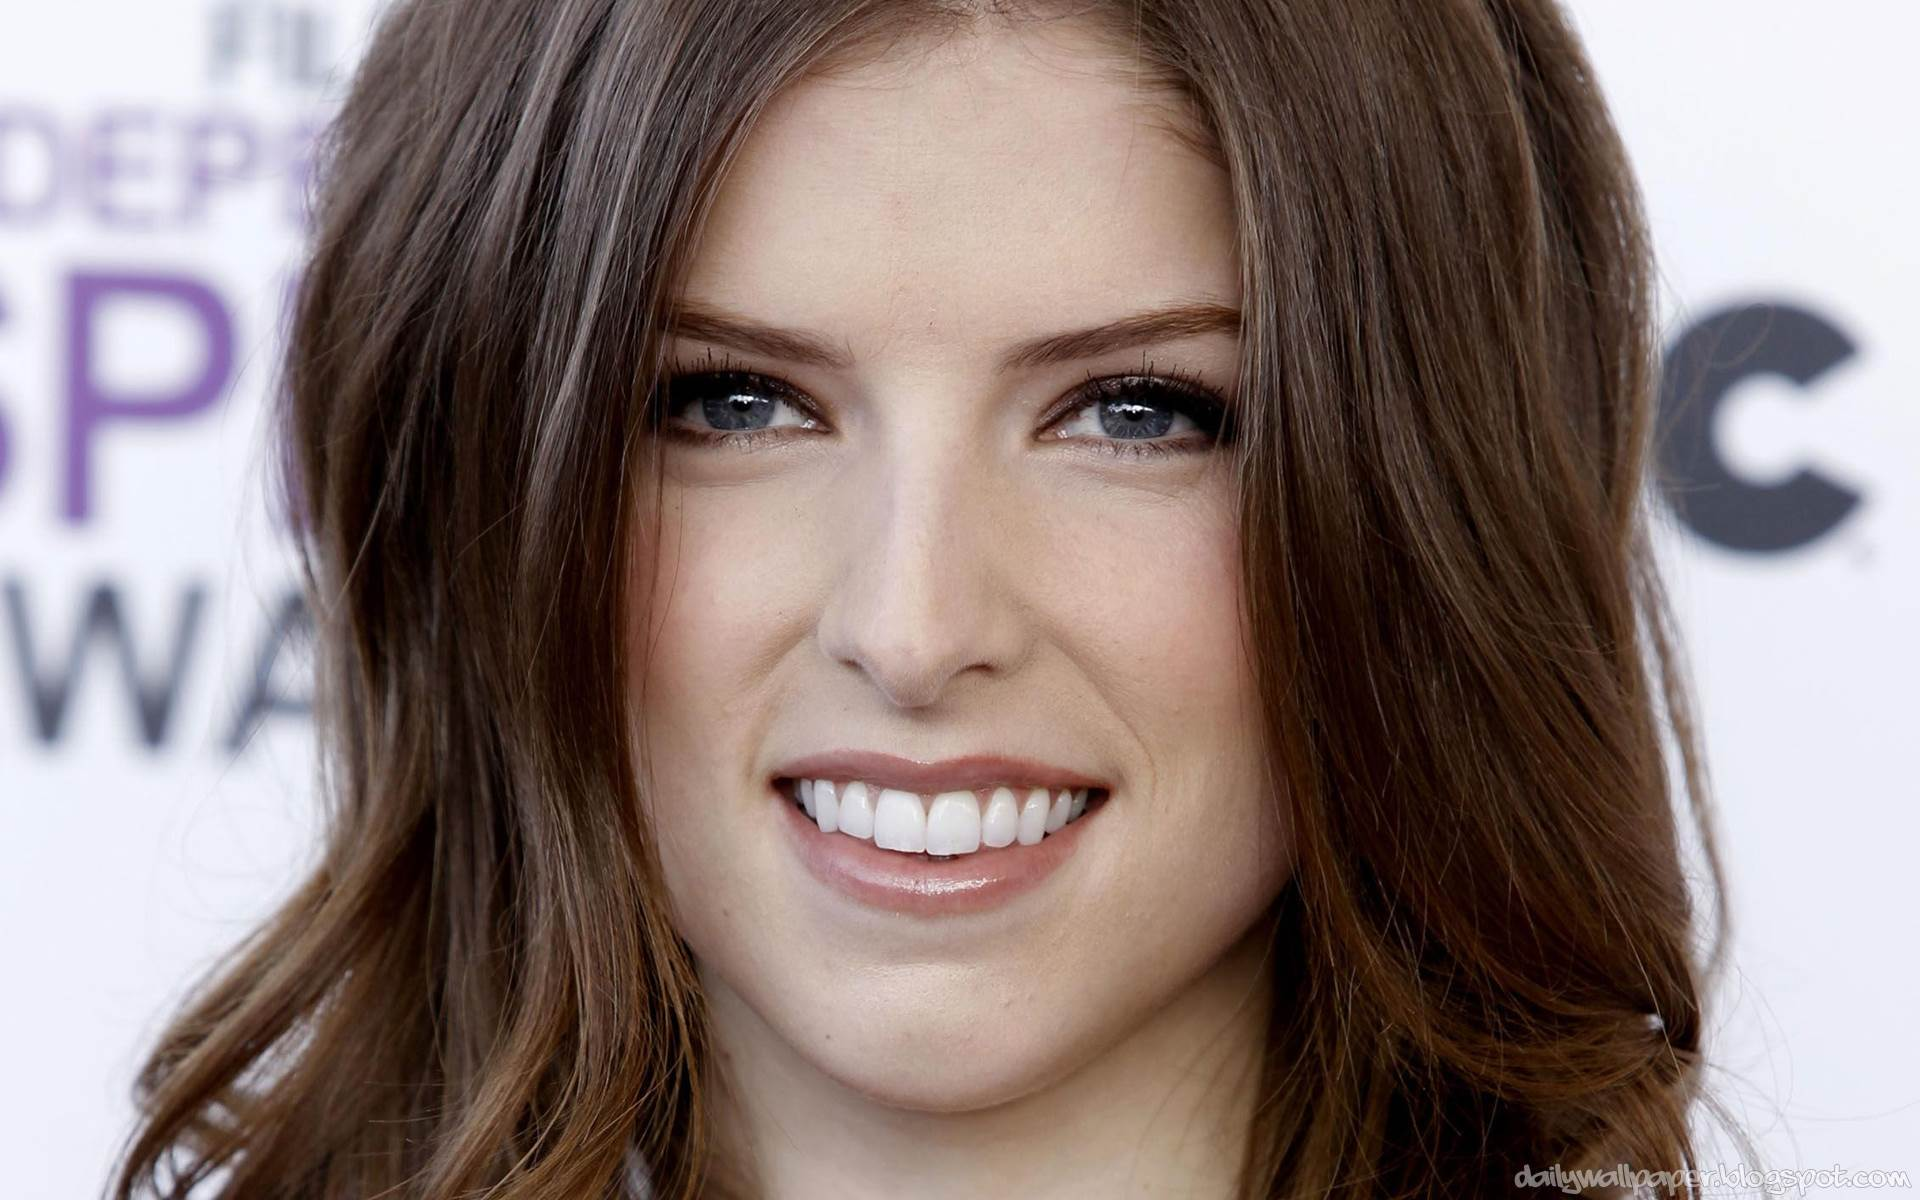 Anna Kendrick 24 Widescreen HD